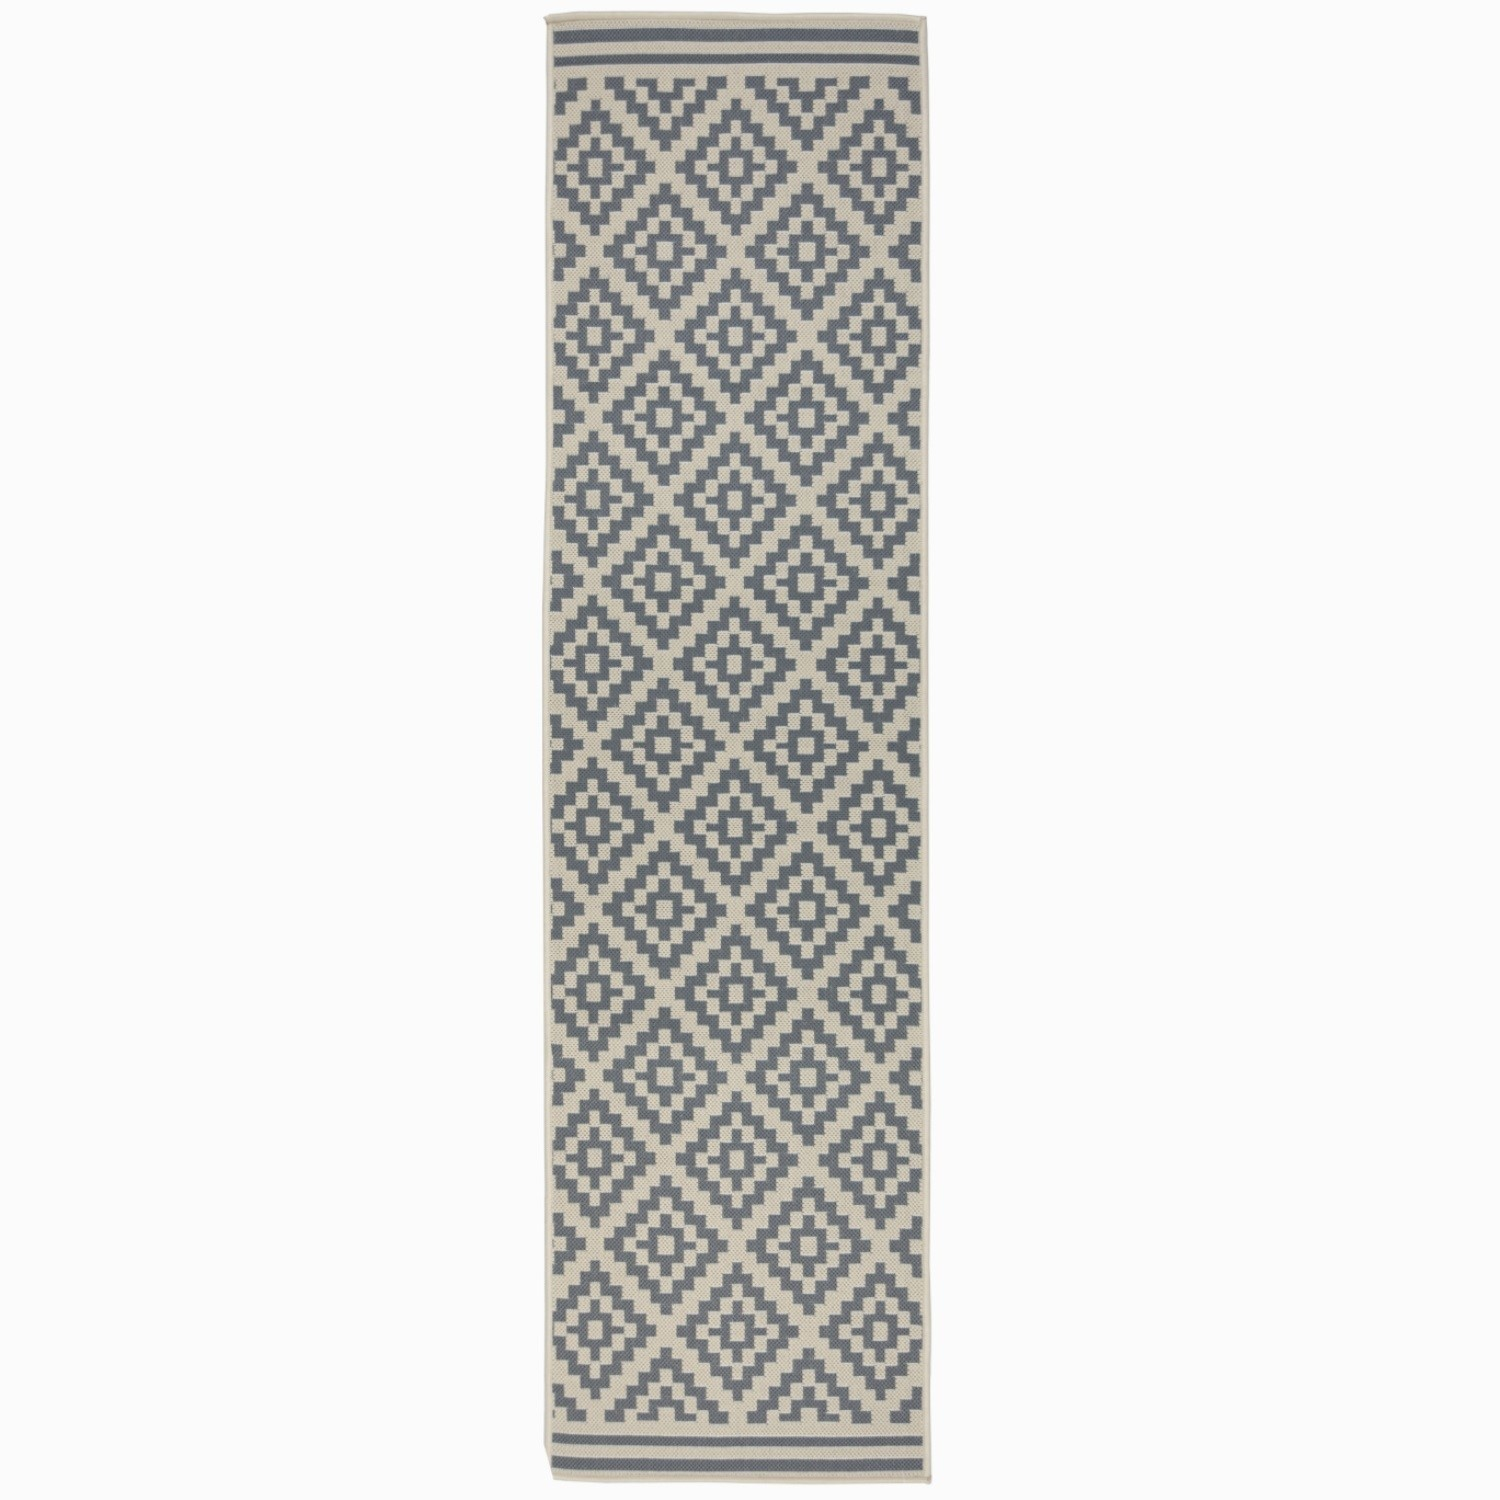 Moretti Beige and Anthracite Runner Rug - 60 x 230 cm - Flai